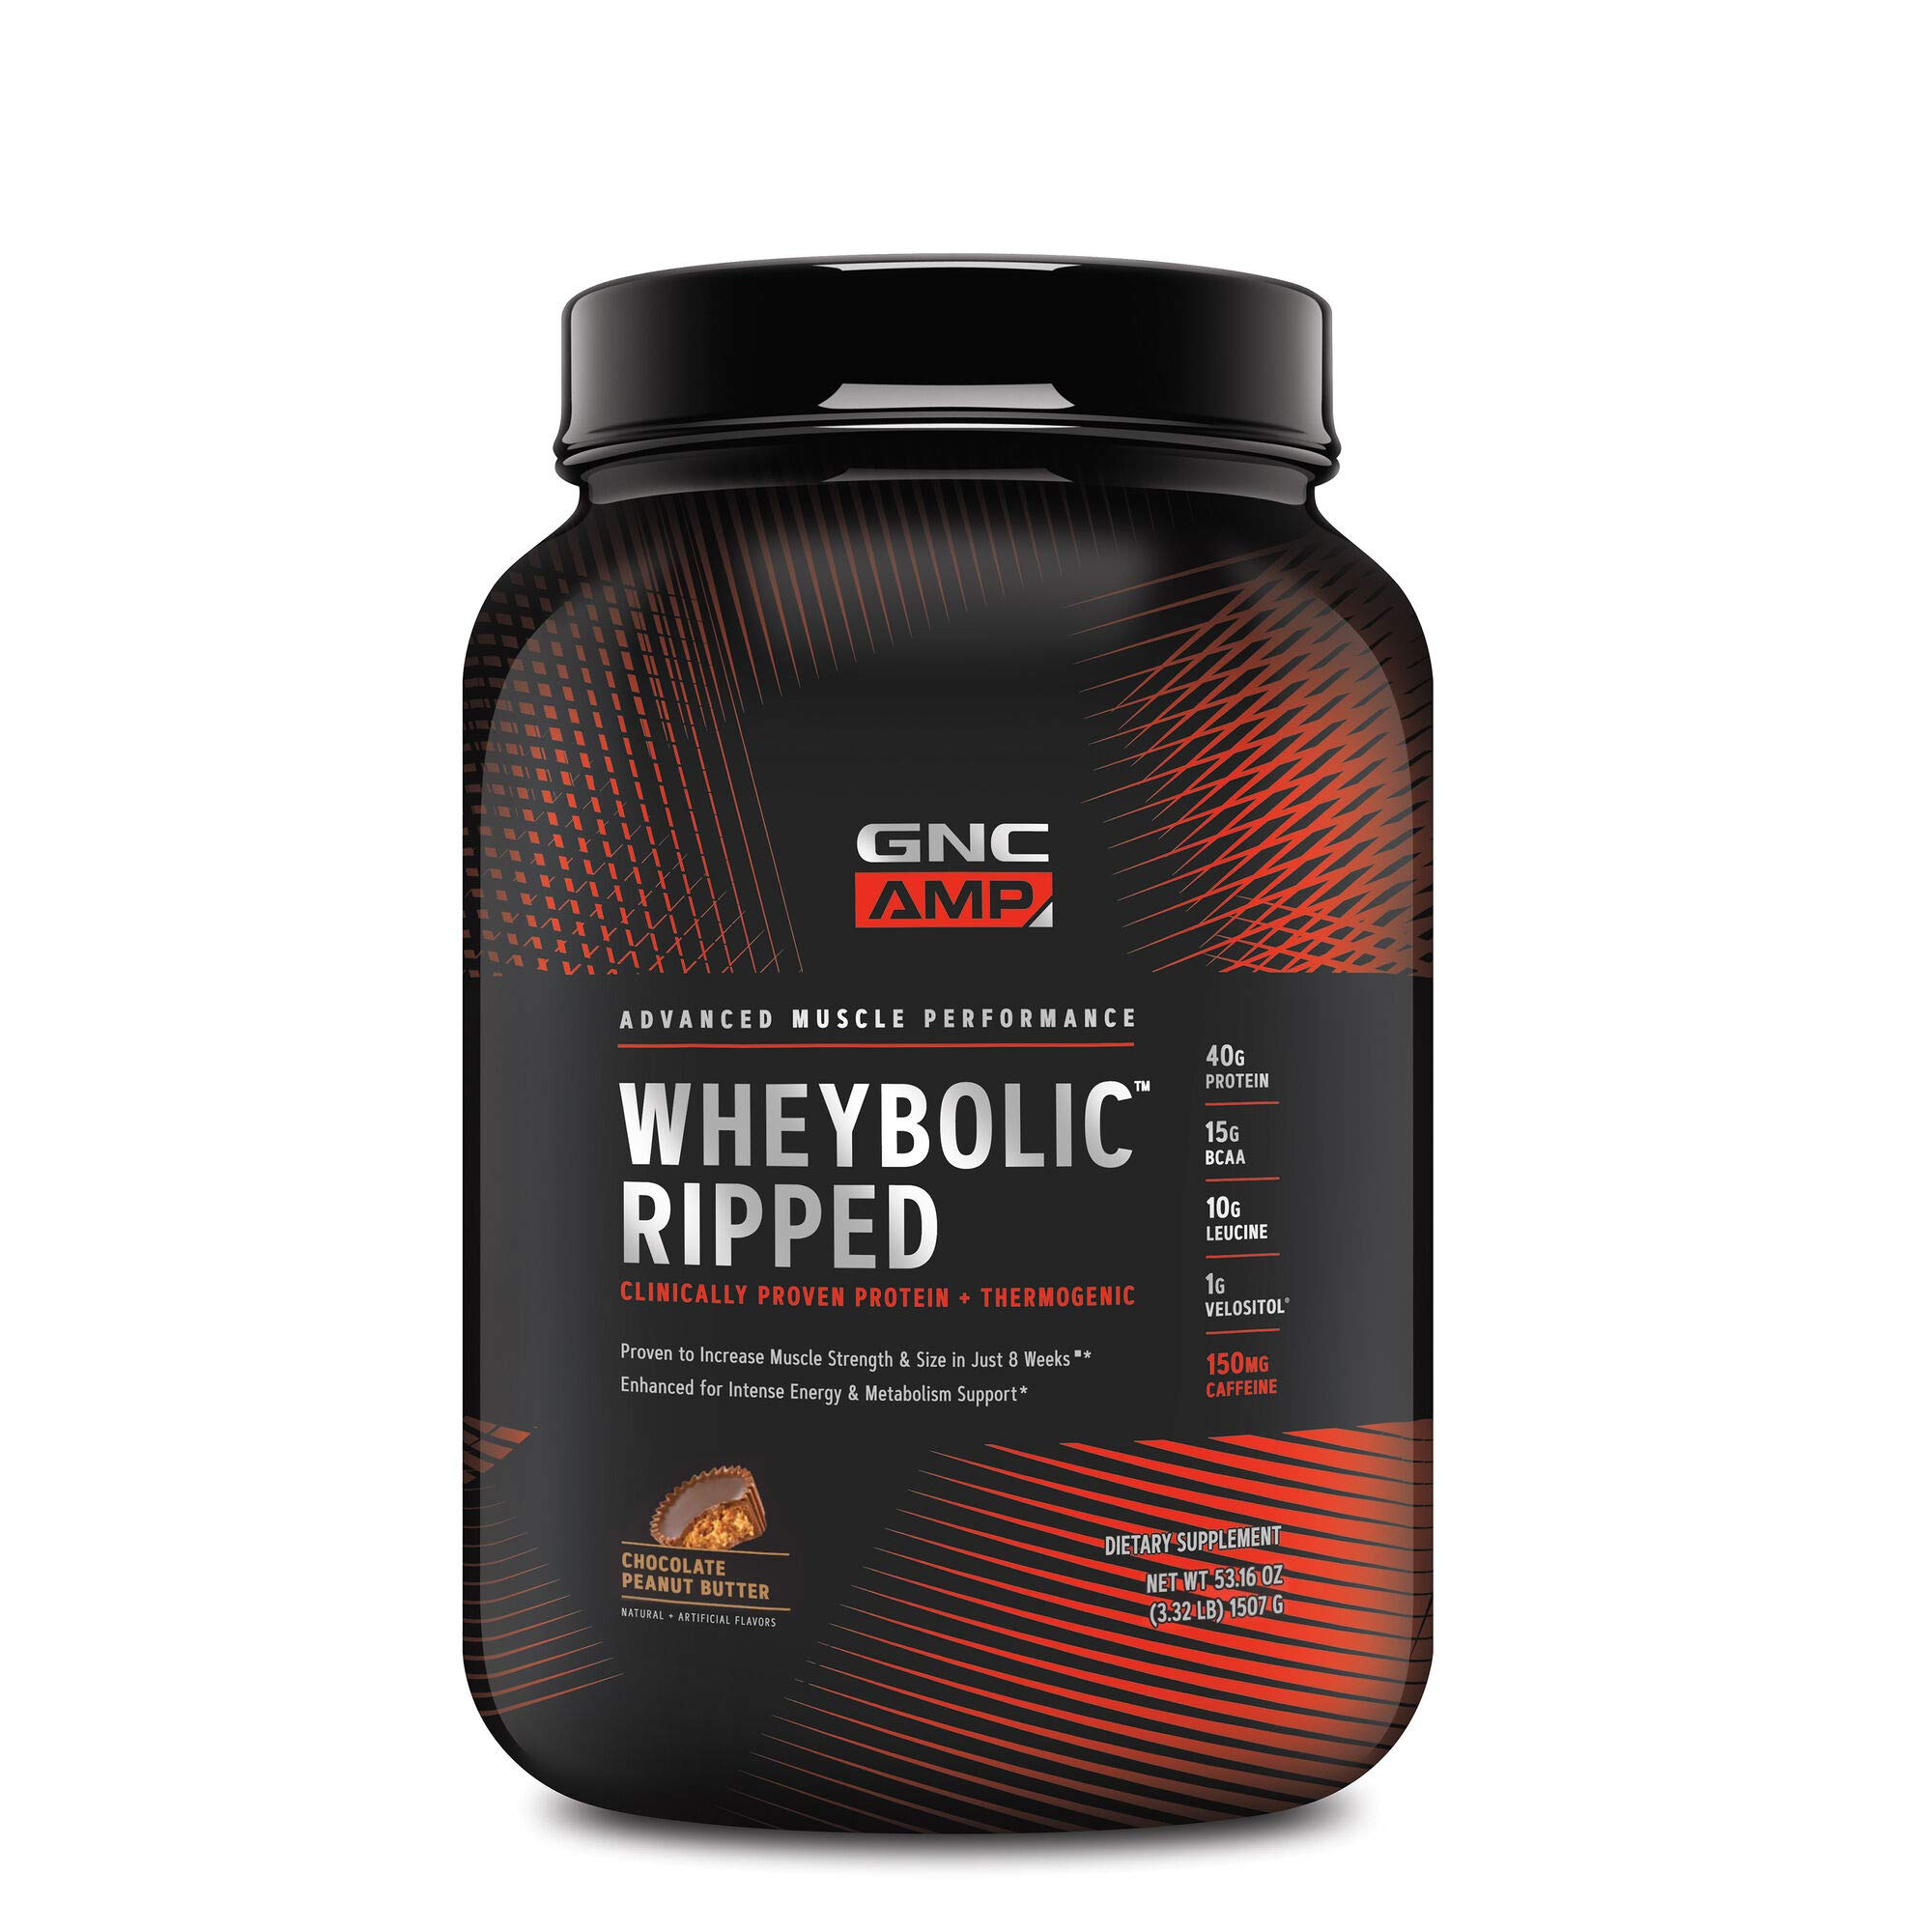 GNC AMP Wheybolic Ripped, Chocolate Peanut Butter, 22 Servings, Contains 40g Protein and 15g BCAA Per Serving by GNC